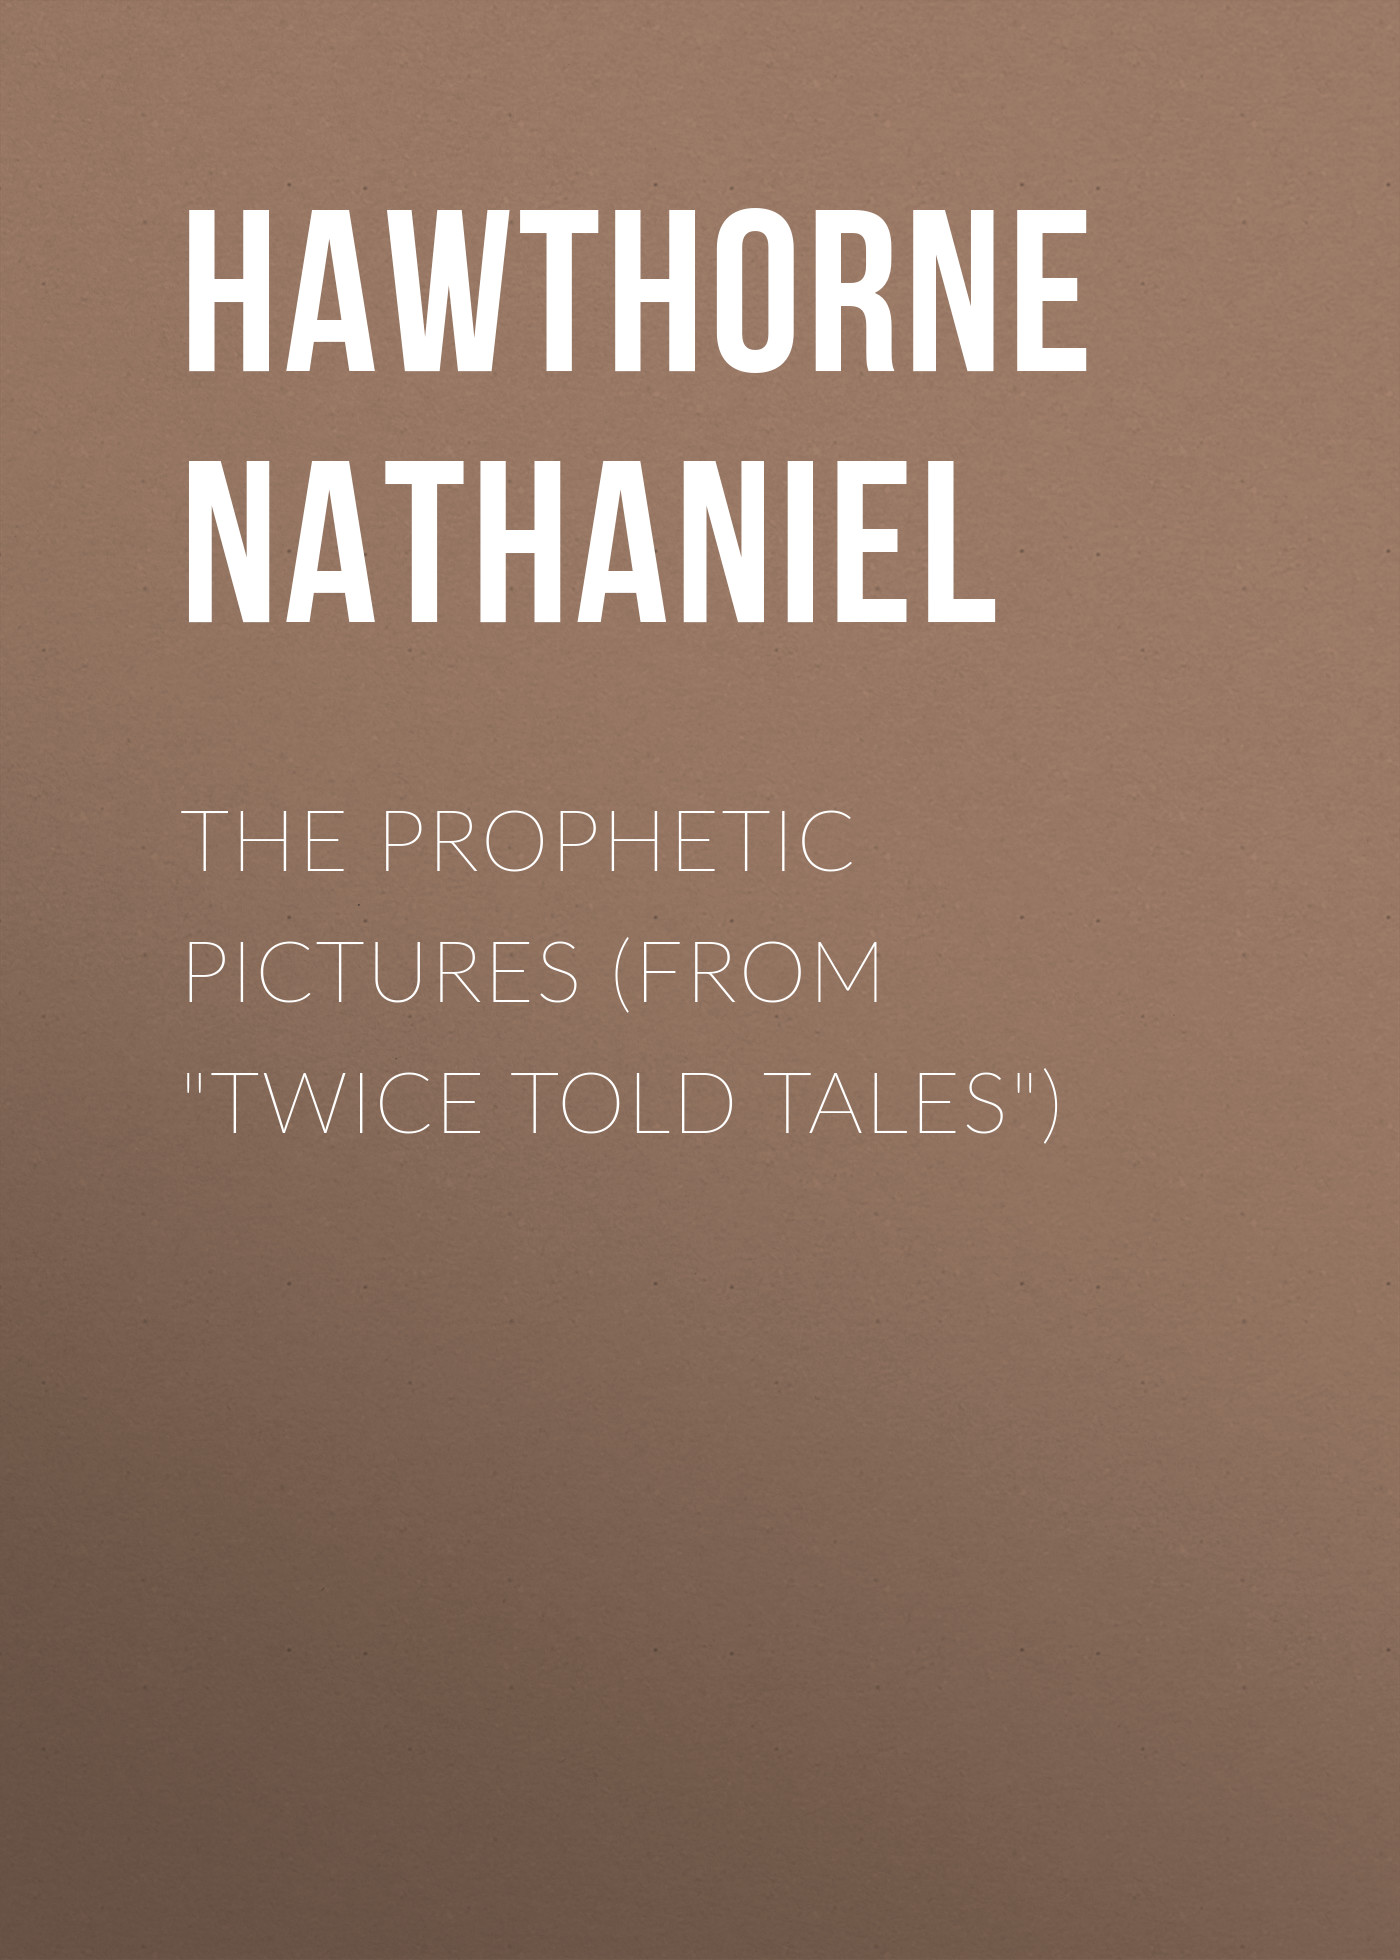 Hawthorne Nathaniel The Prophetic Pictures (From Twice Told Tales) hawthorne nathaniel the threefold destiny from twice told tales